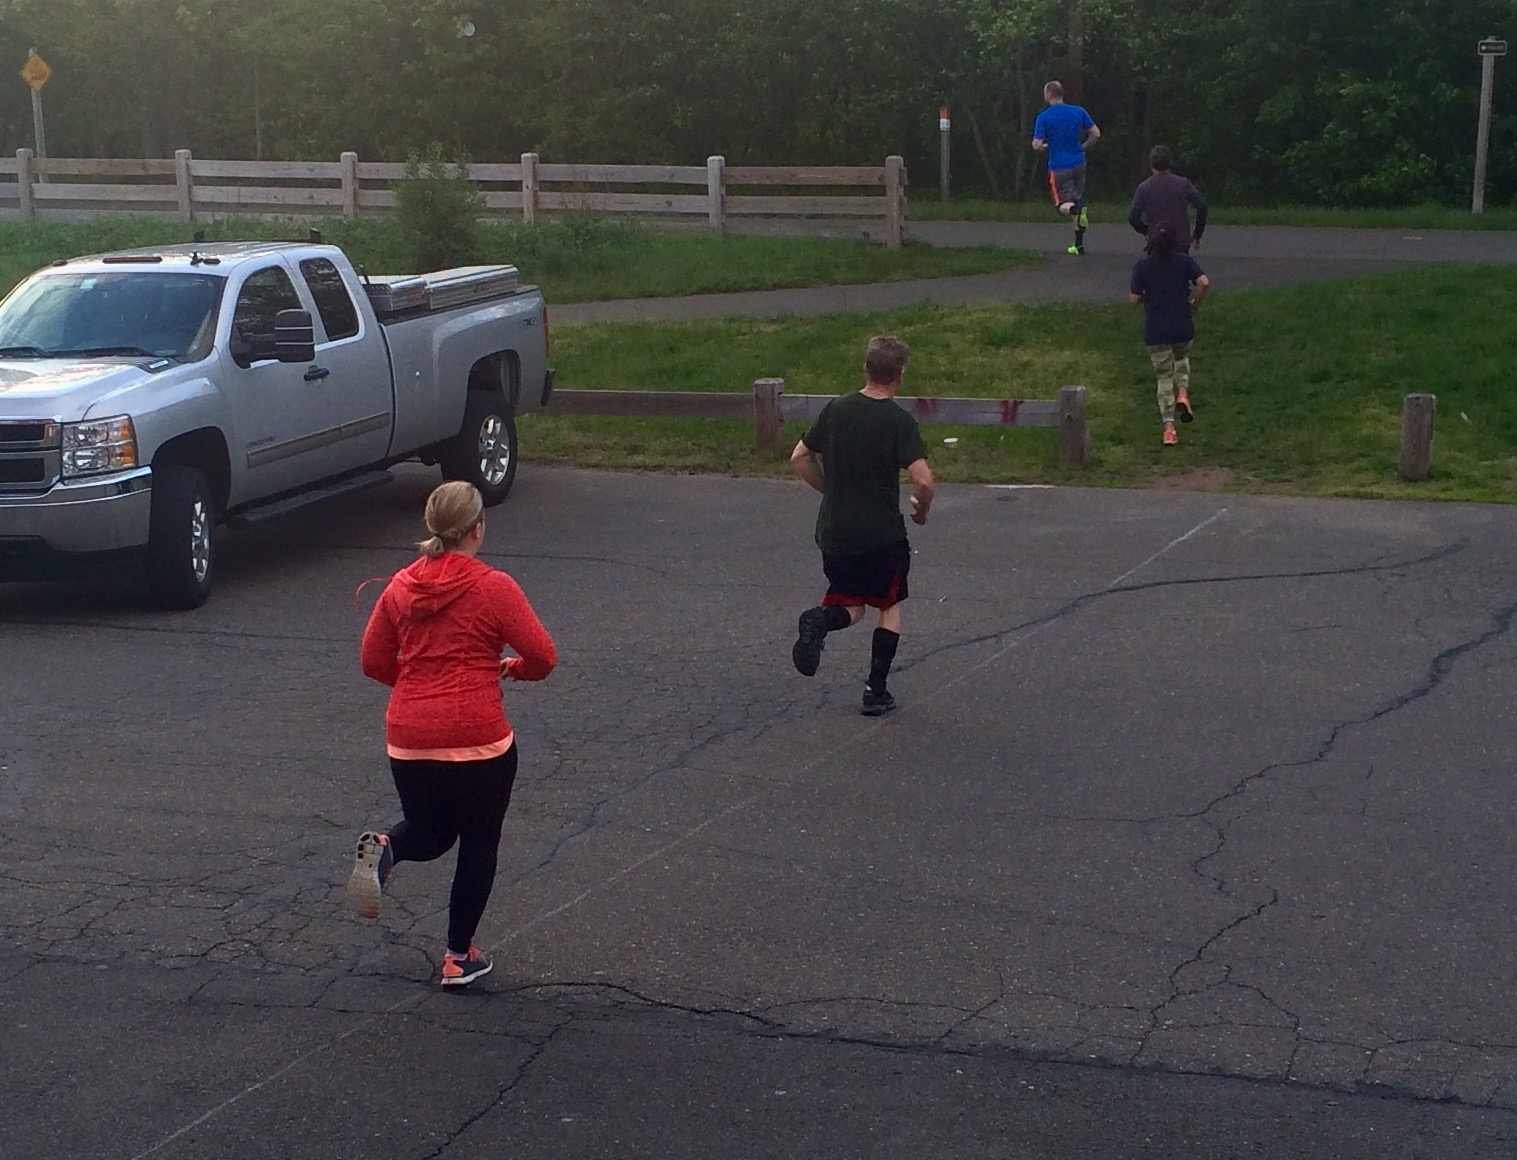 630 am class - setting a great pace for the run!